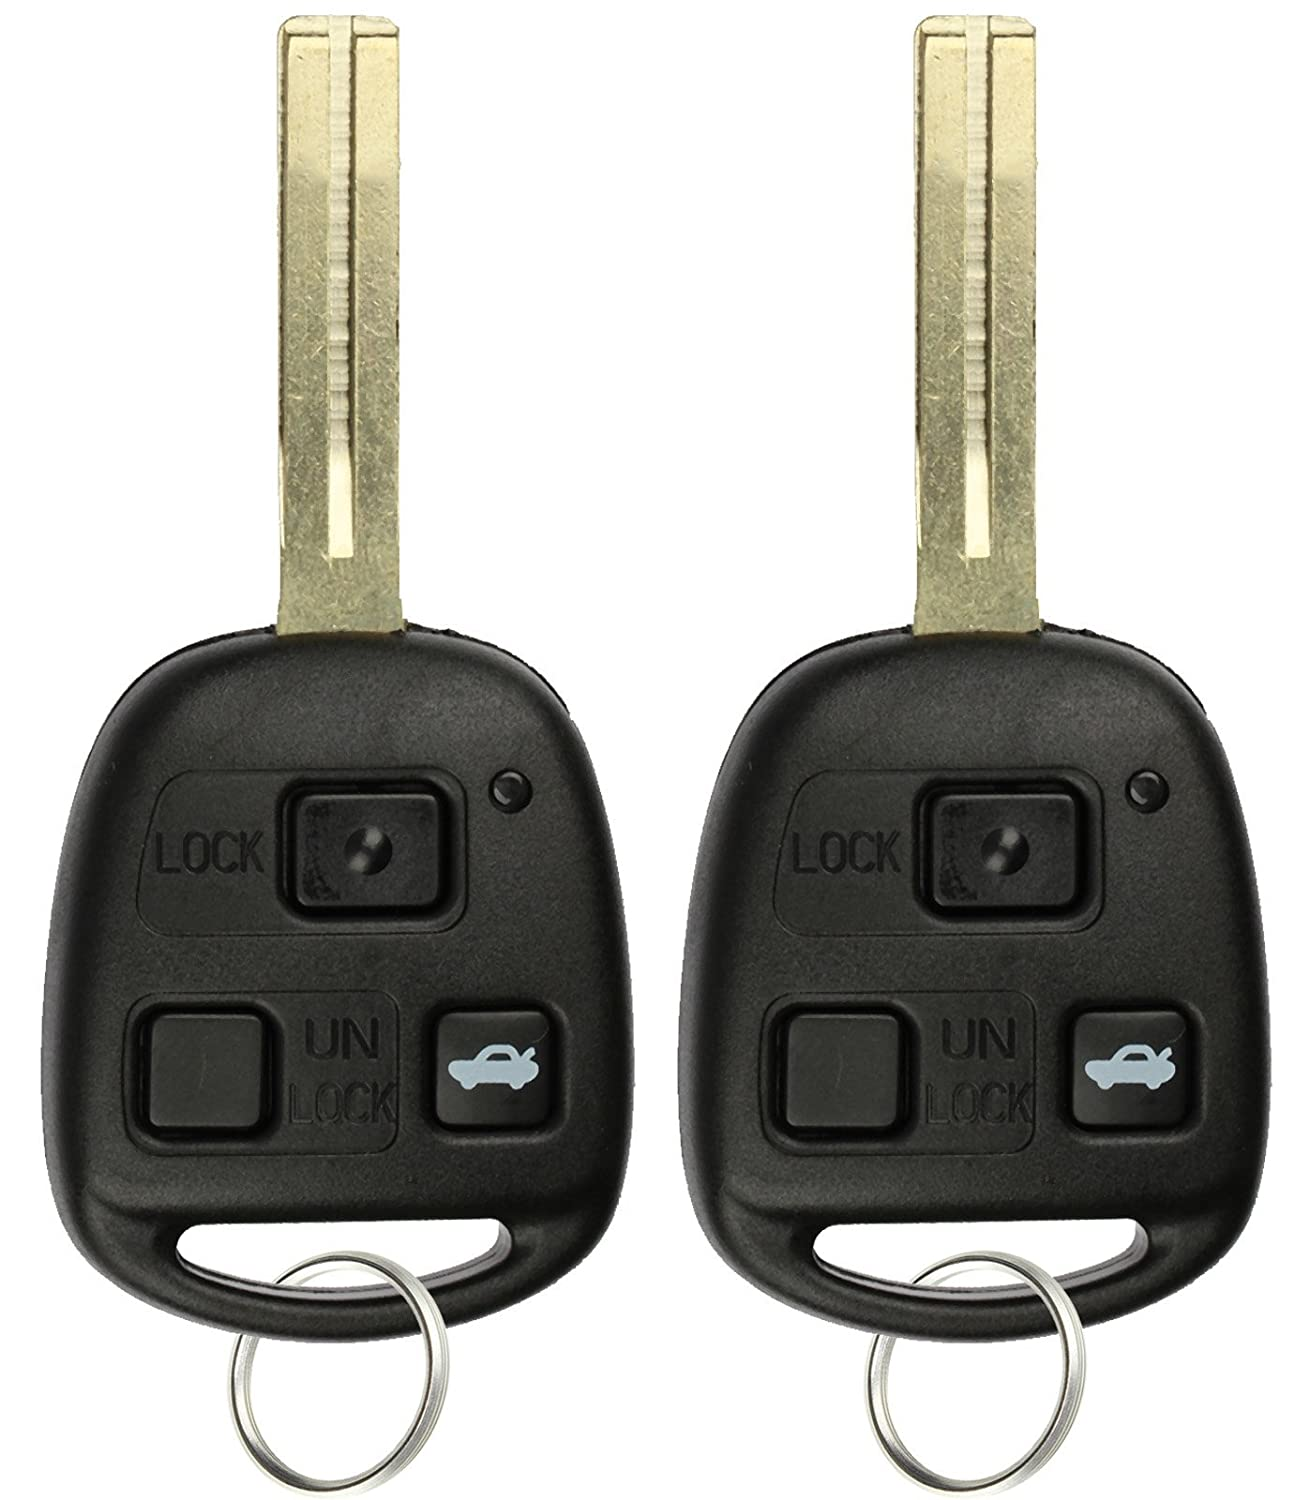 Pack of 2 KPT1720 KeylessOption Keyless Entry Remote Control Car Key Fob Replacement for HYQ1512V